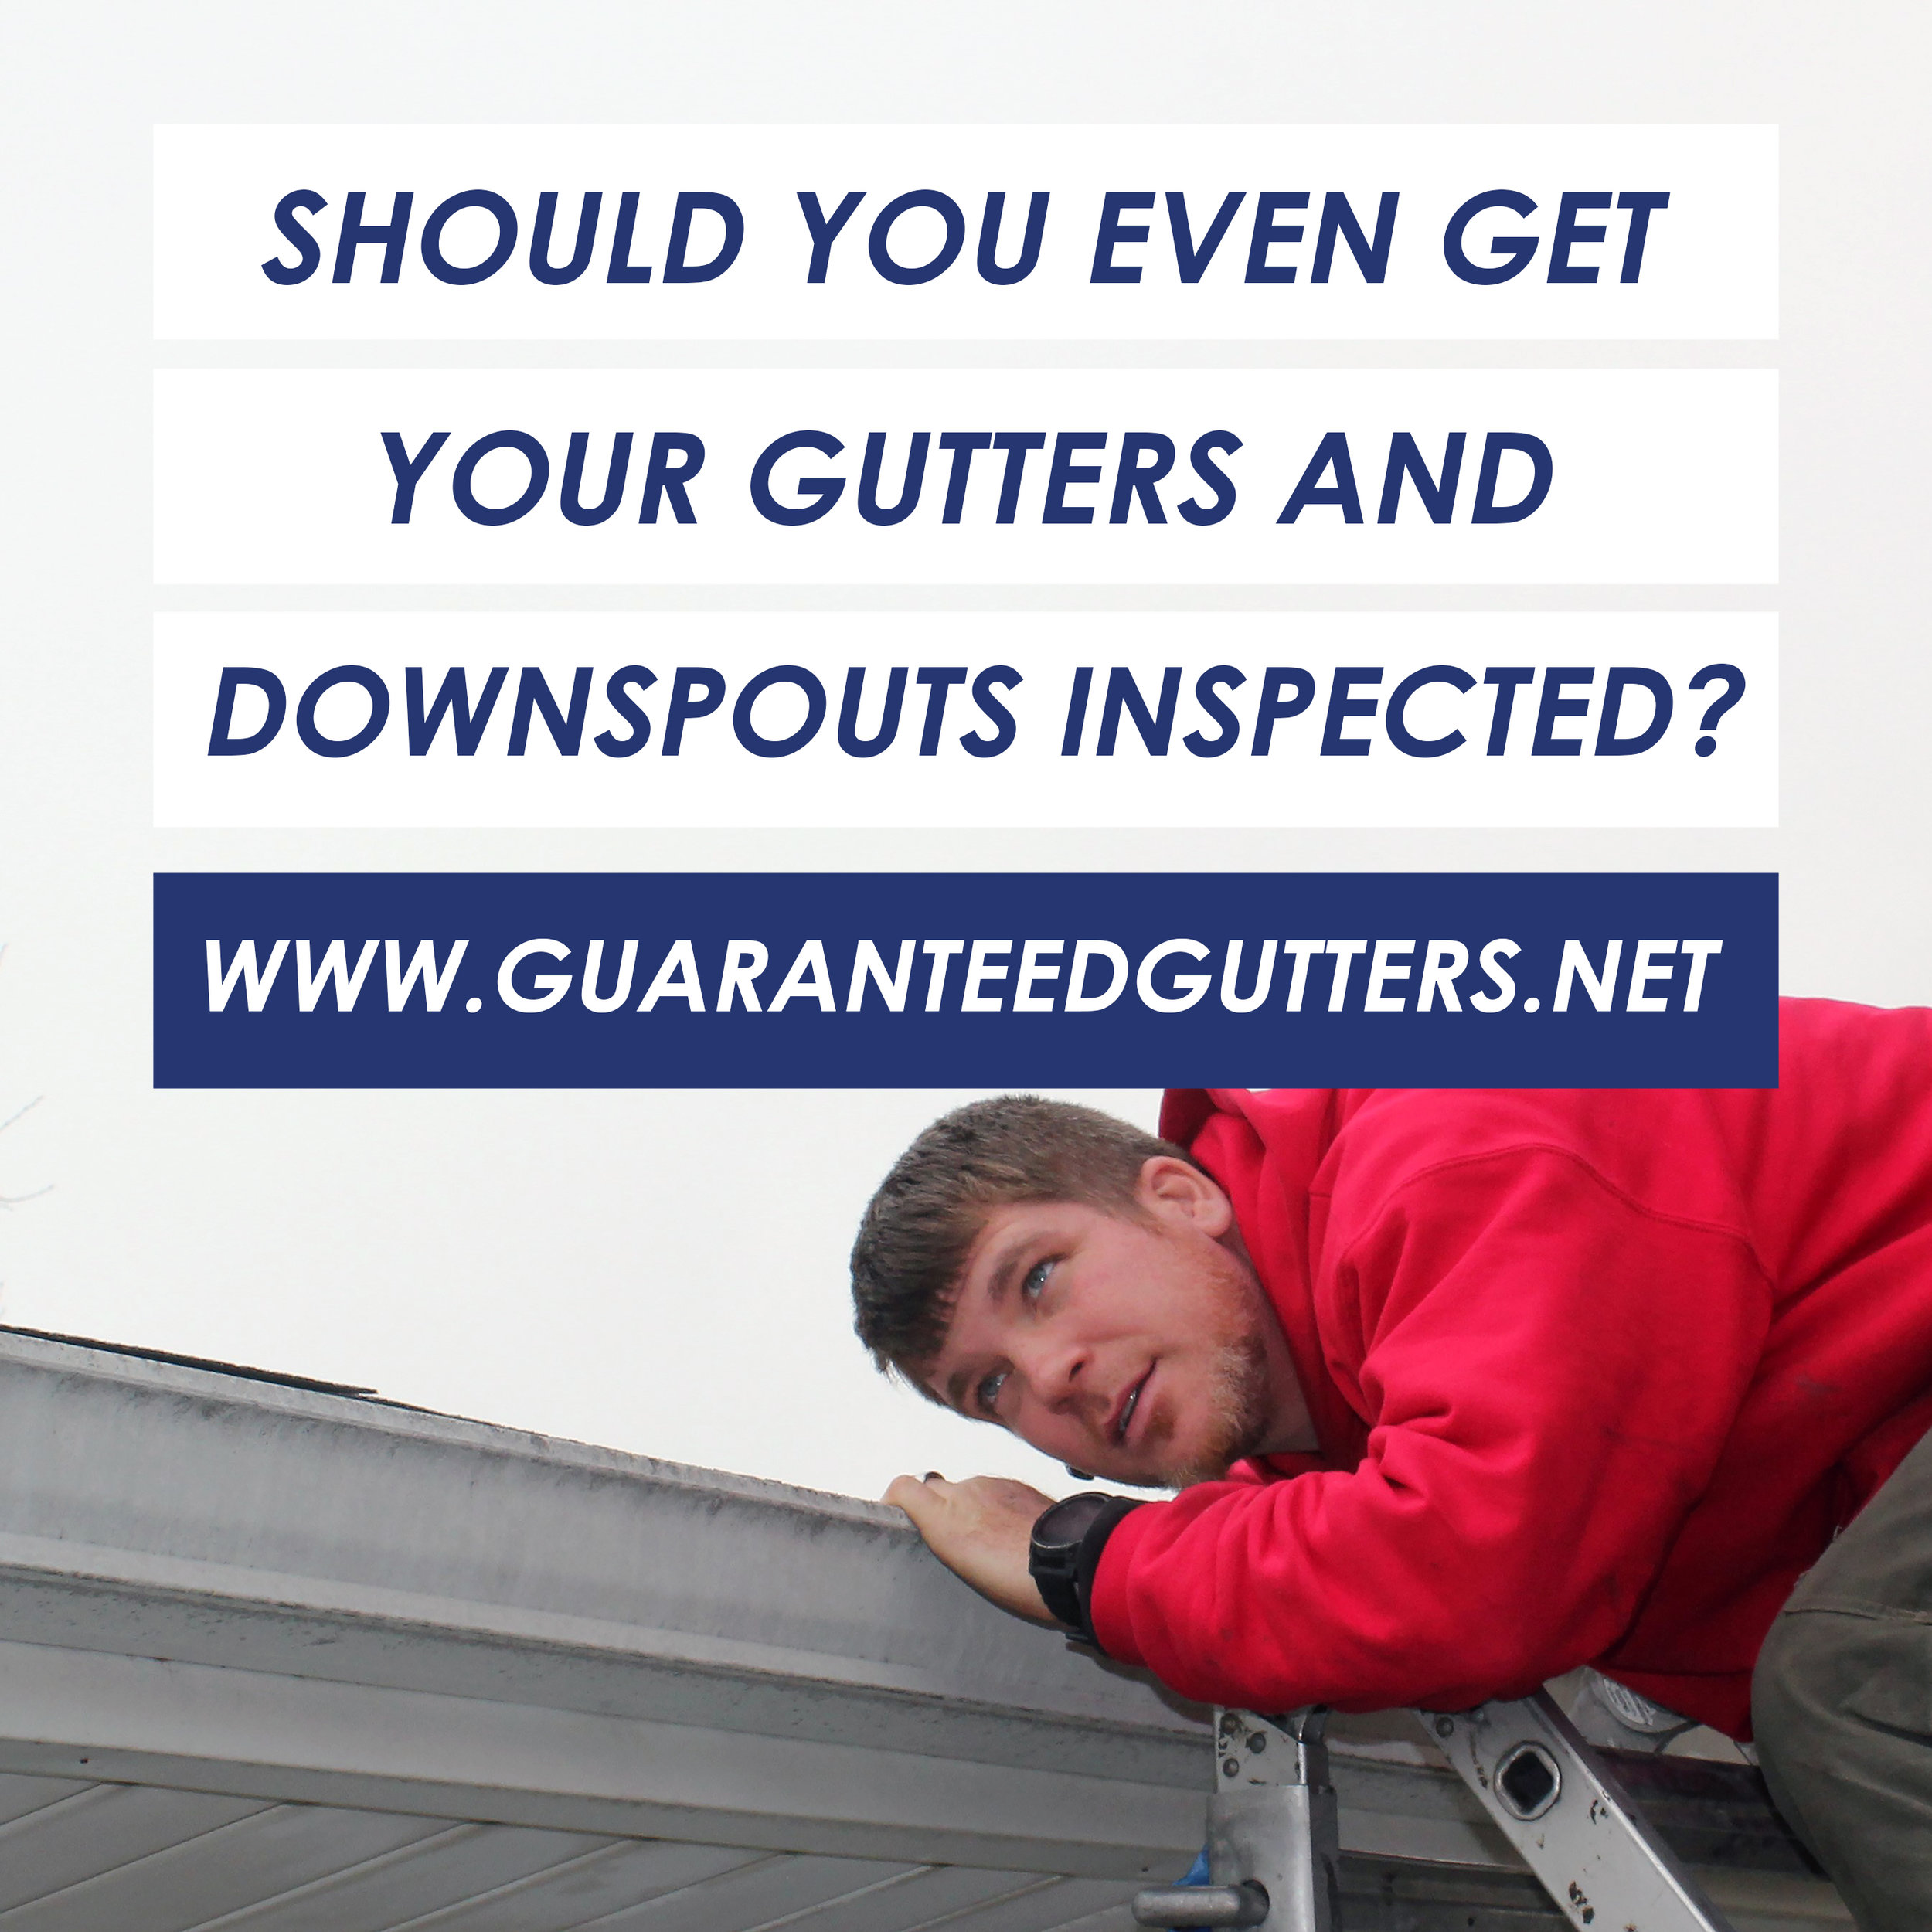 Should_you_even_get_your_gutters_and_downspouts_inspected.jpg